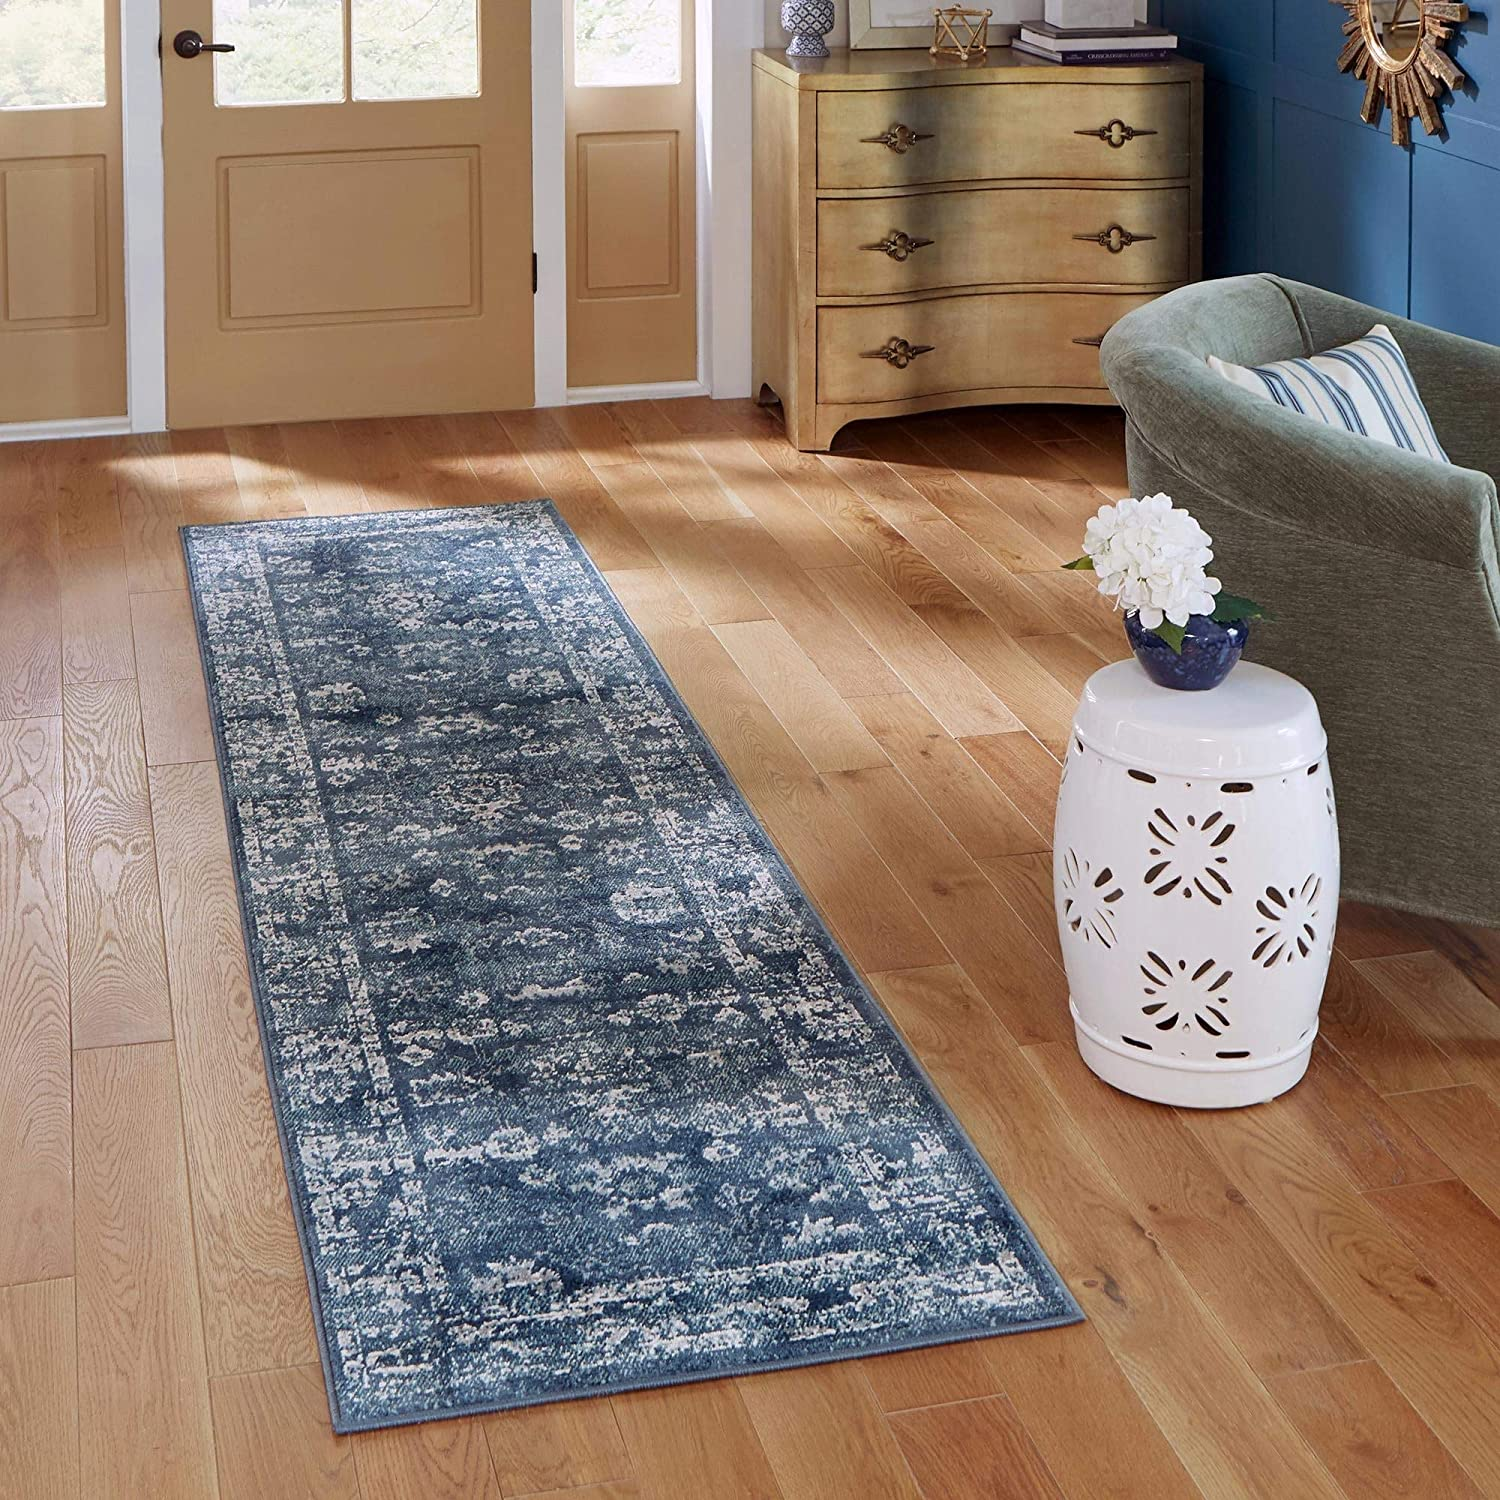 Ranking TOP7 Rugs.com Charleston Collection Rug – 40% OFF Cheap Sale Ft Navy Blue Runner 6